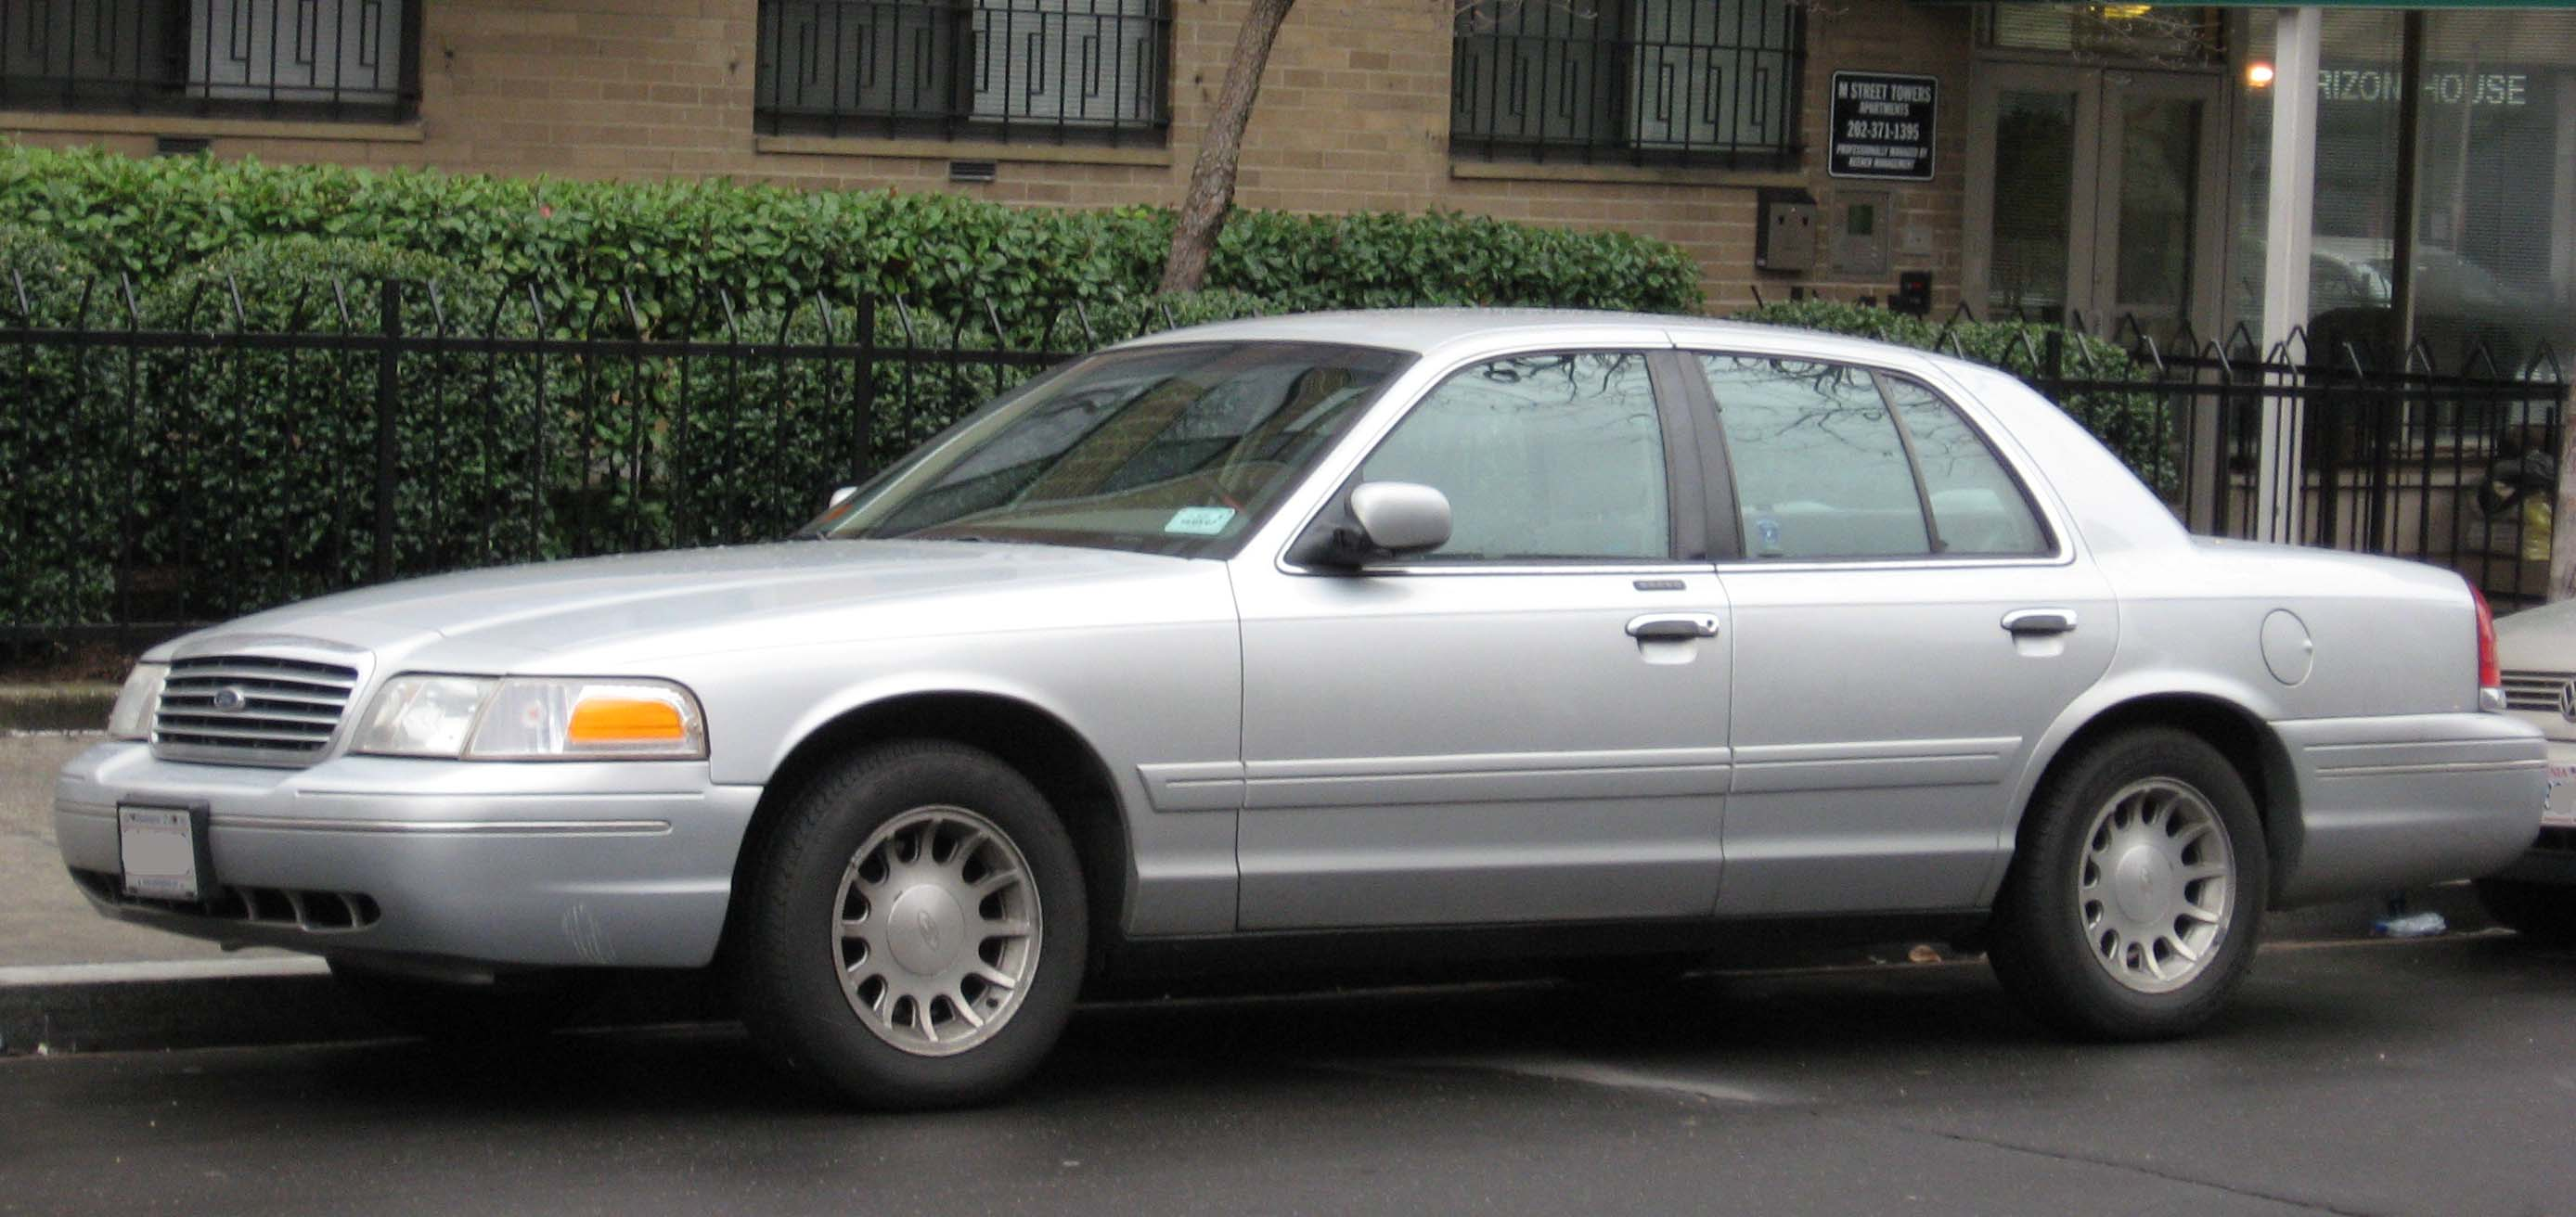 Ford Crown Victoria #1